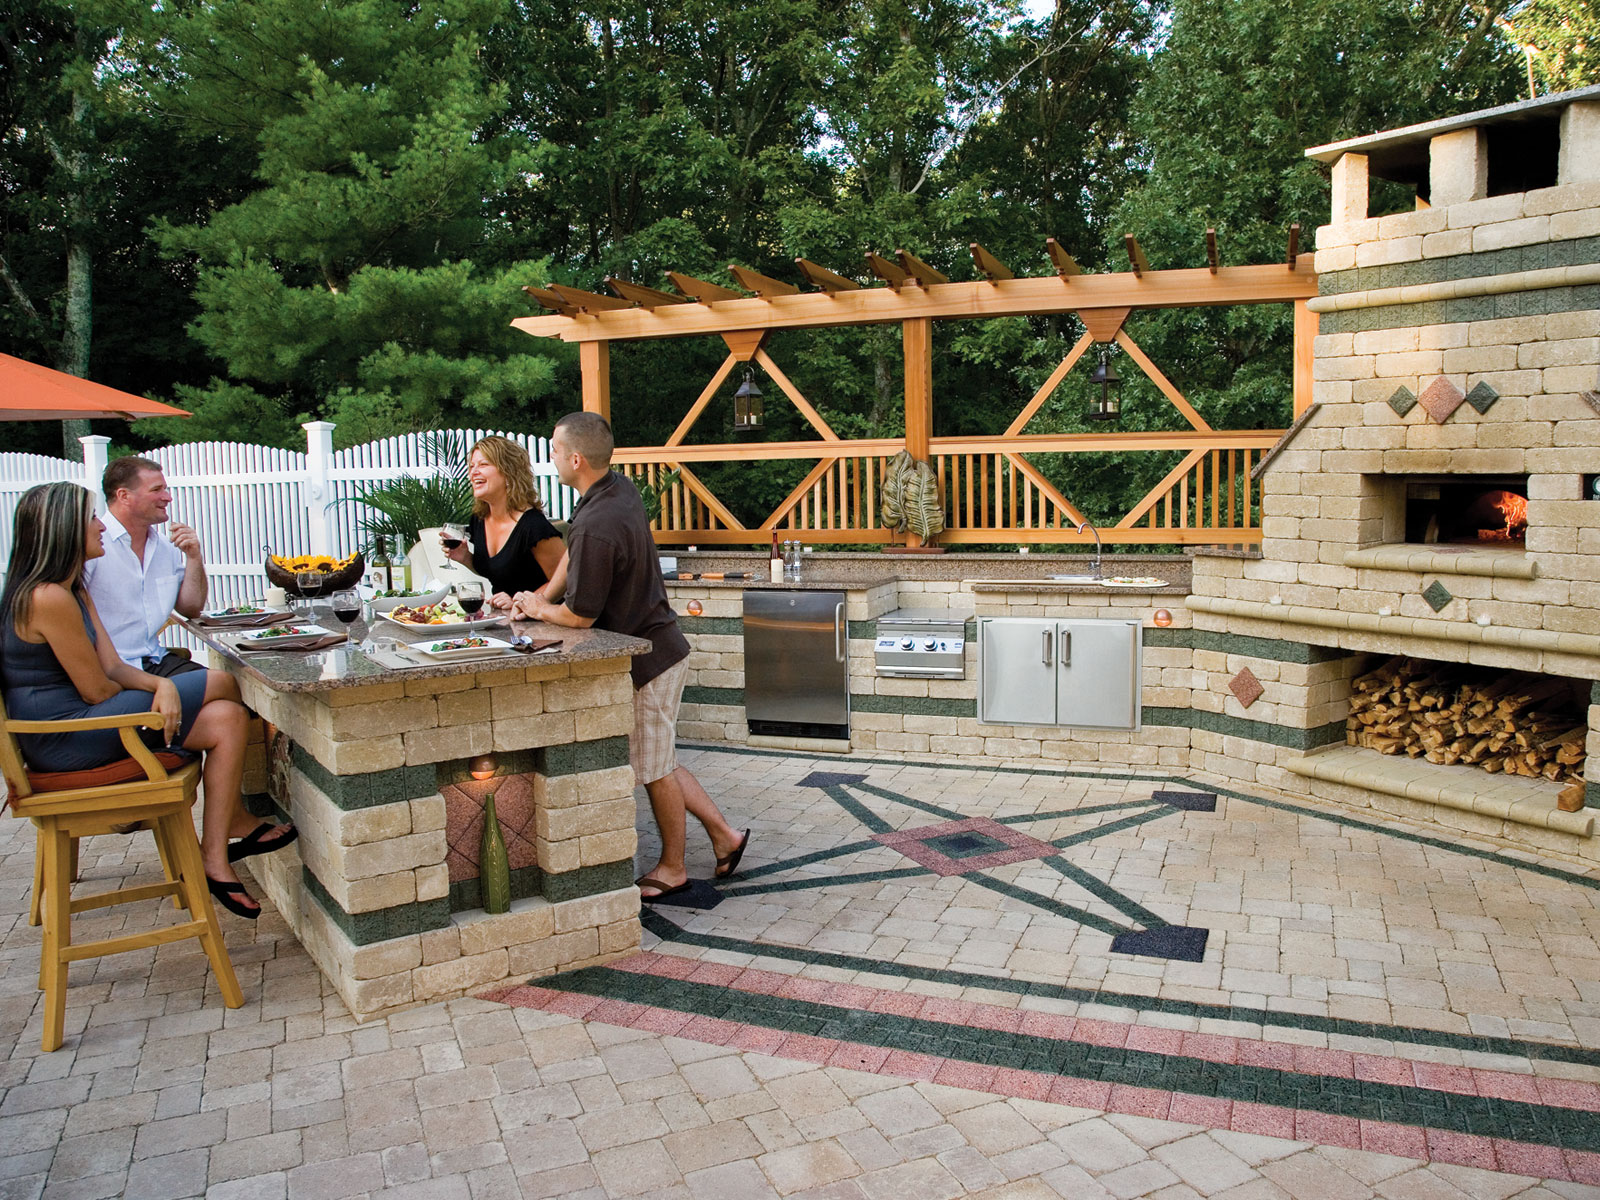 Island Outdoor Kitchen And Catering